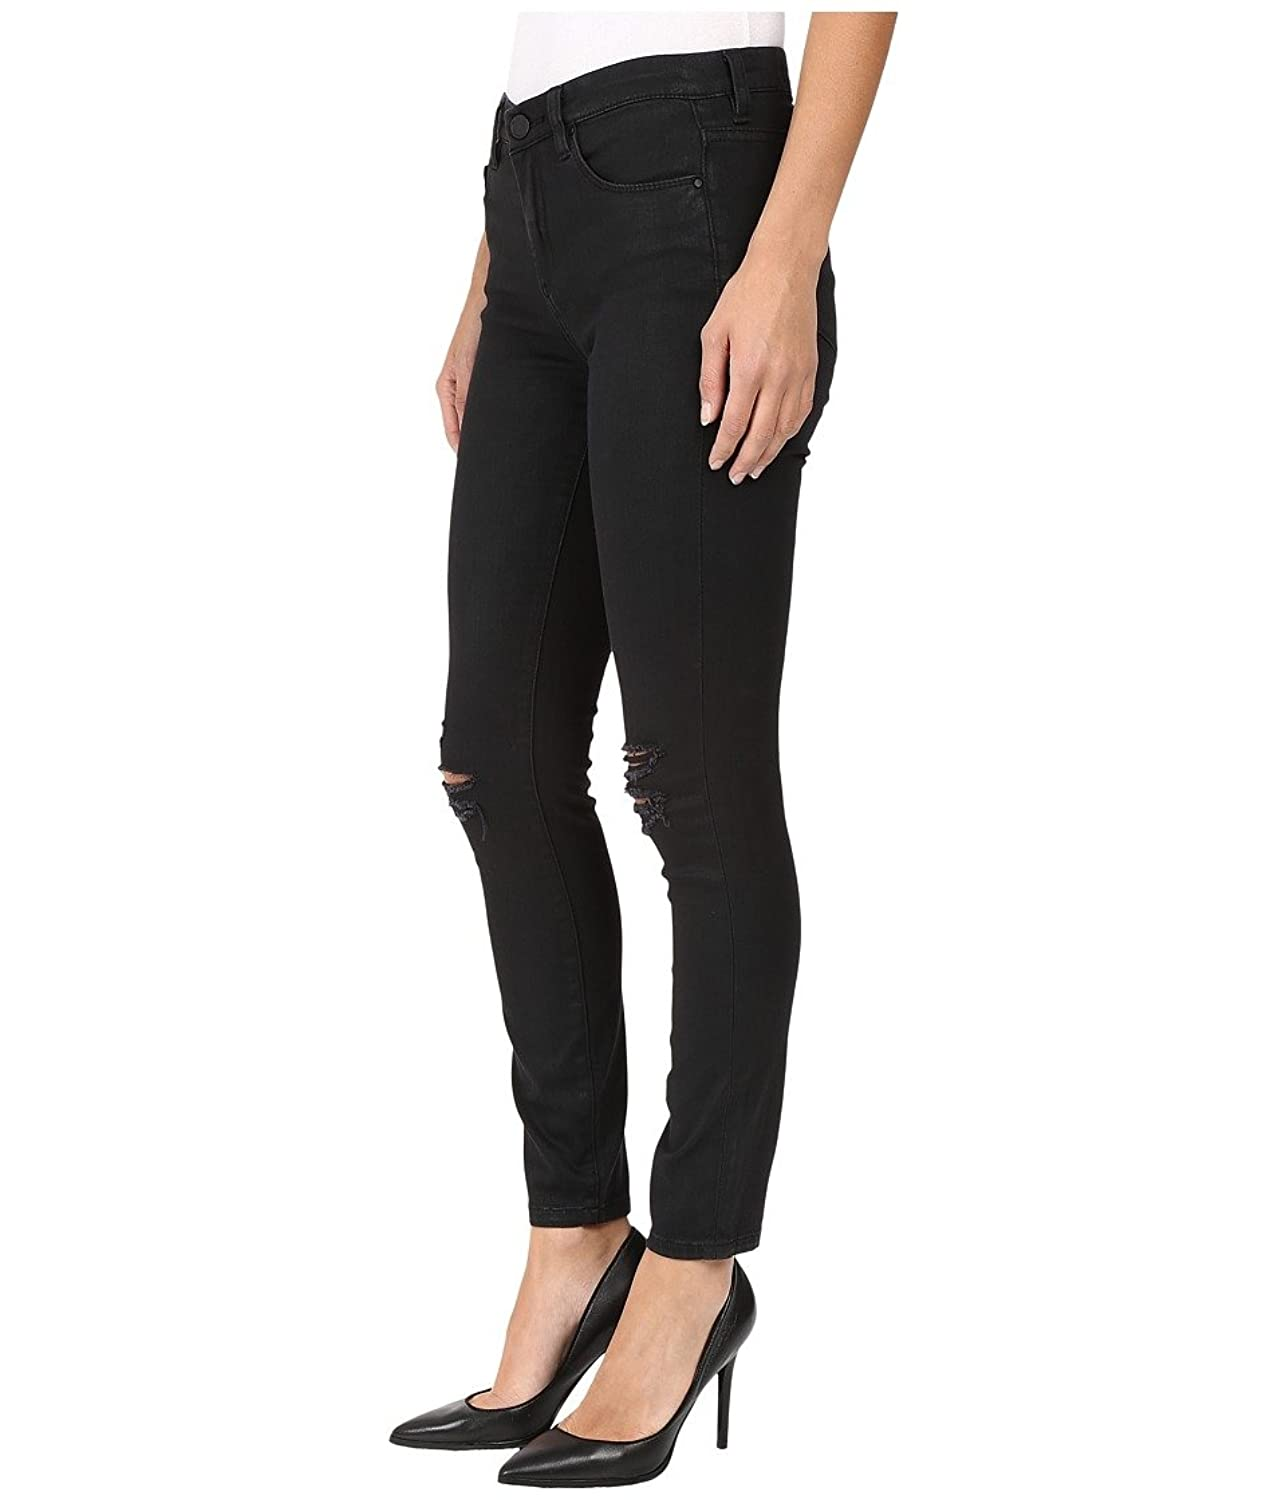 Blank NYC Women's Black Coated Skinny in All Lacquered Up All Lacquered Up Jeans 28 X 28